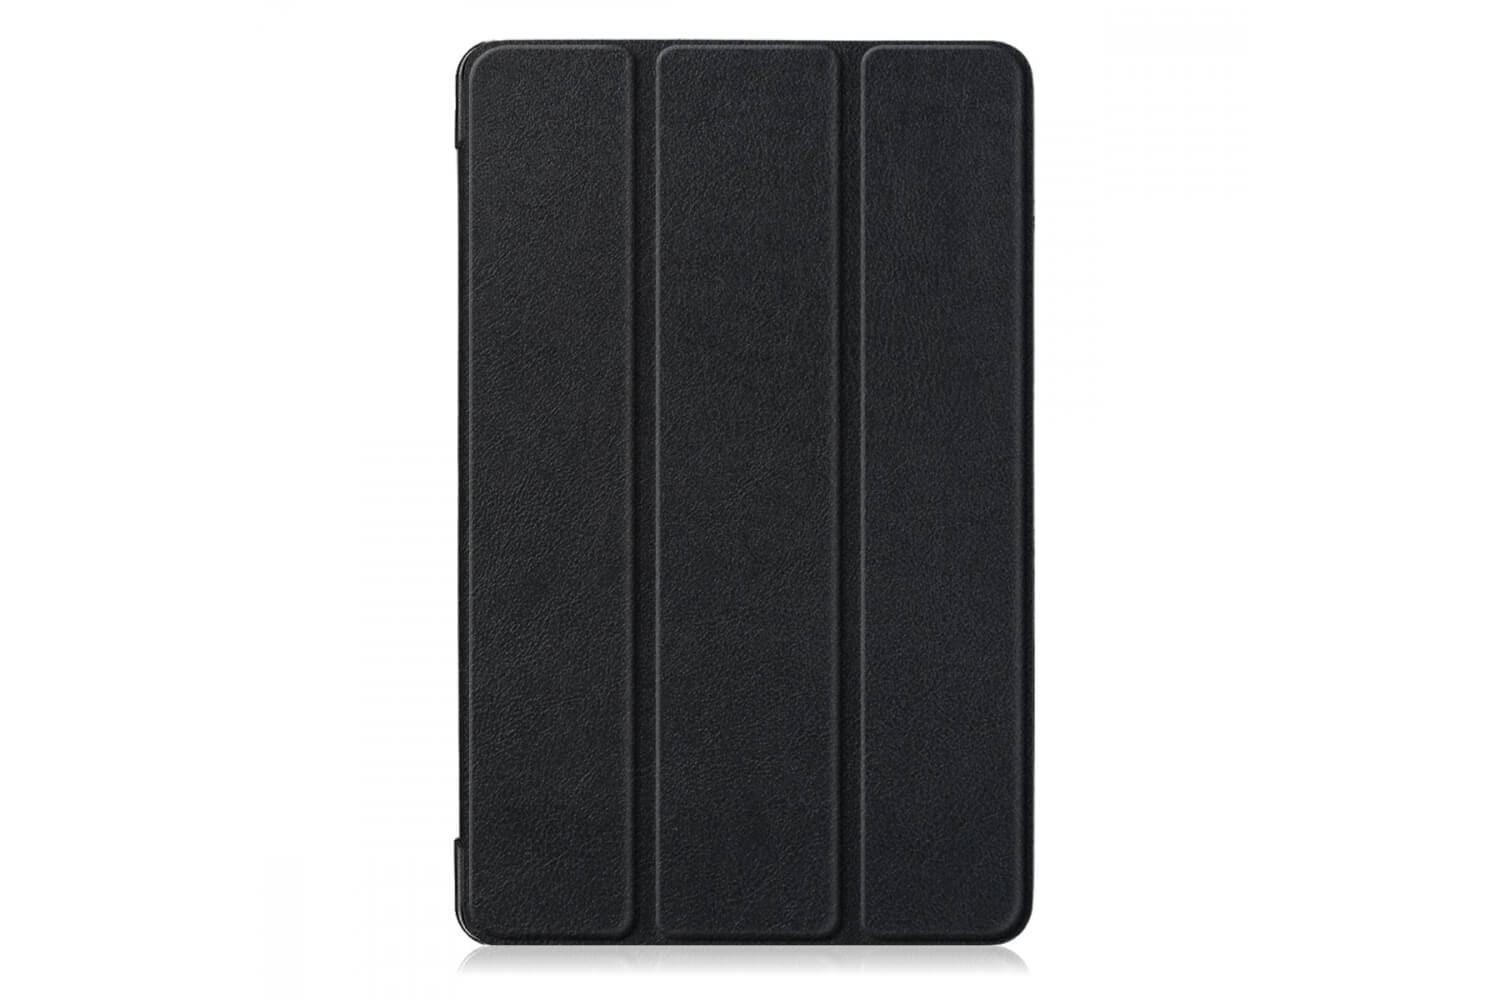 samsung galaxy tab a 10.1 book cover case black